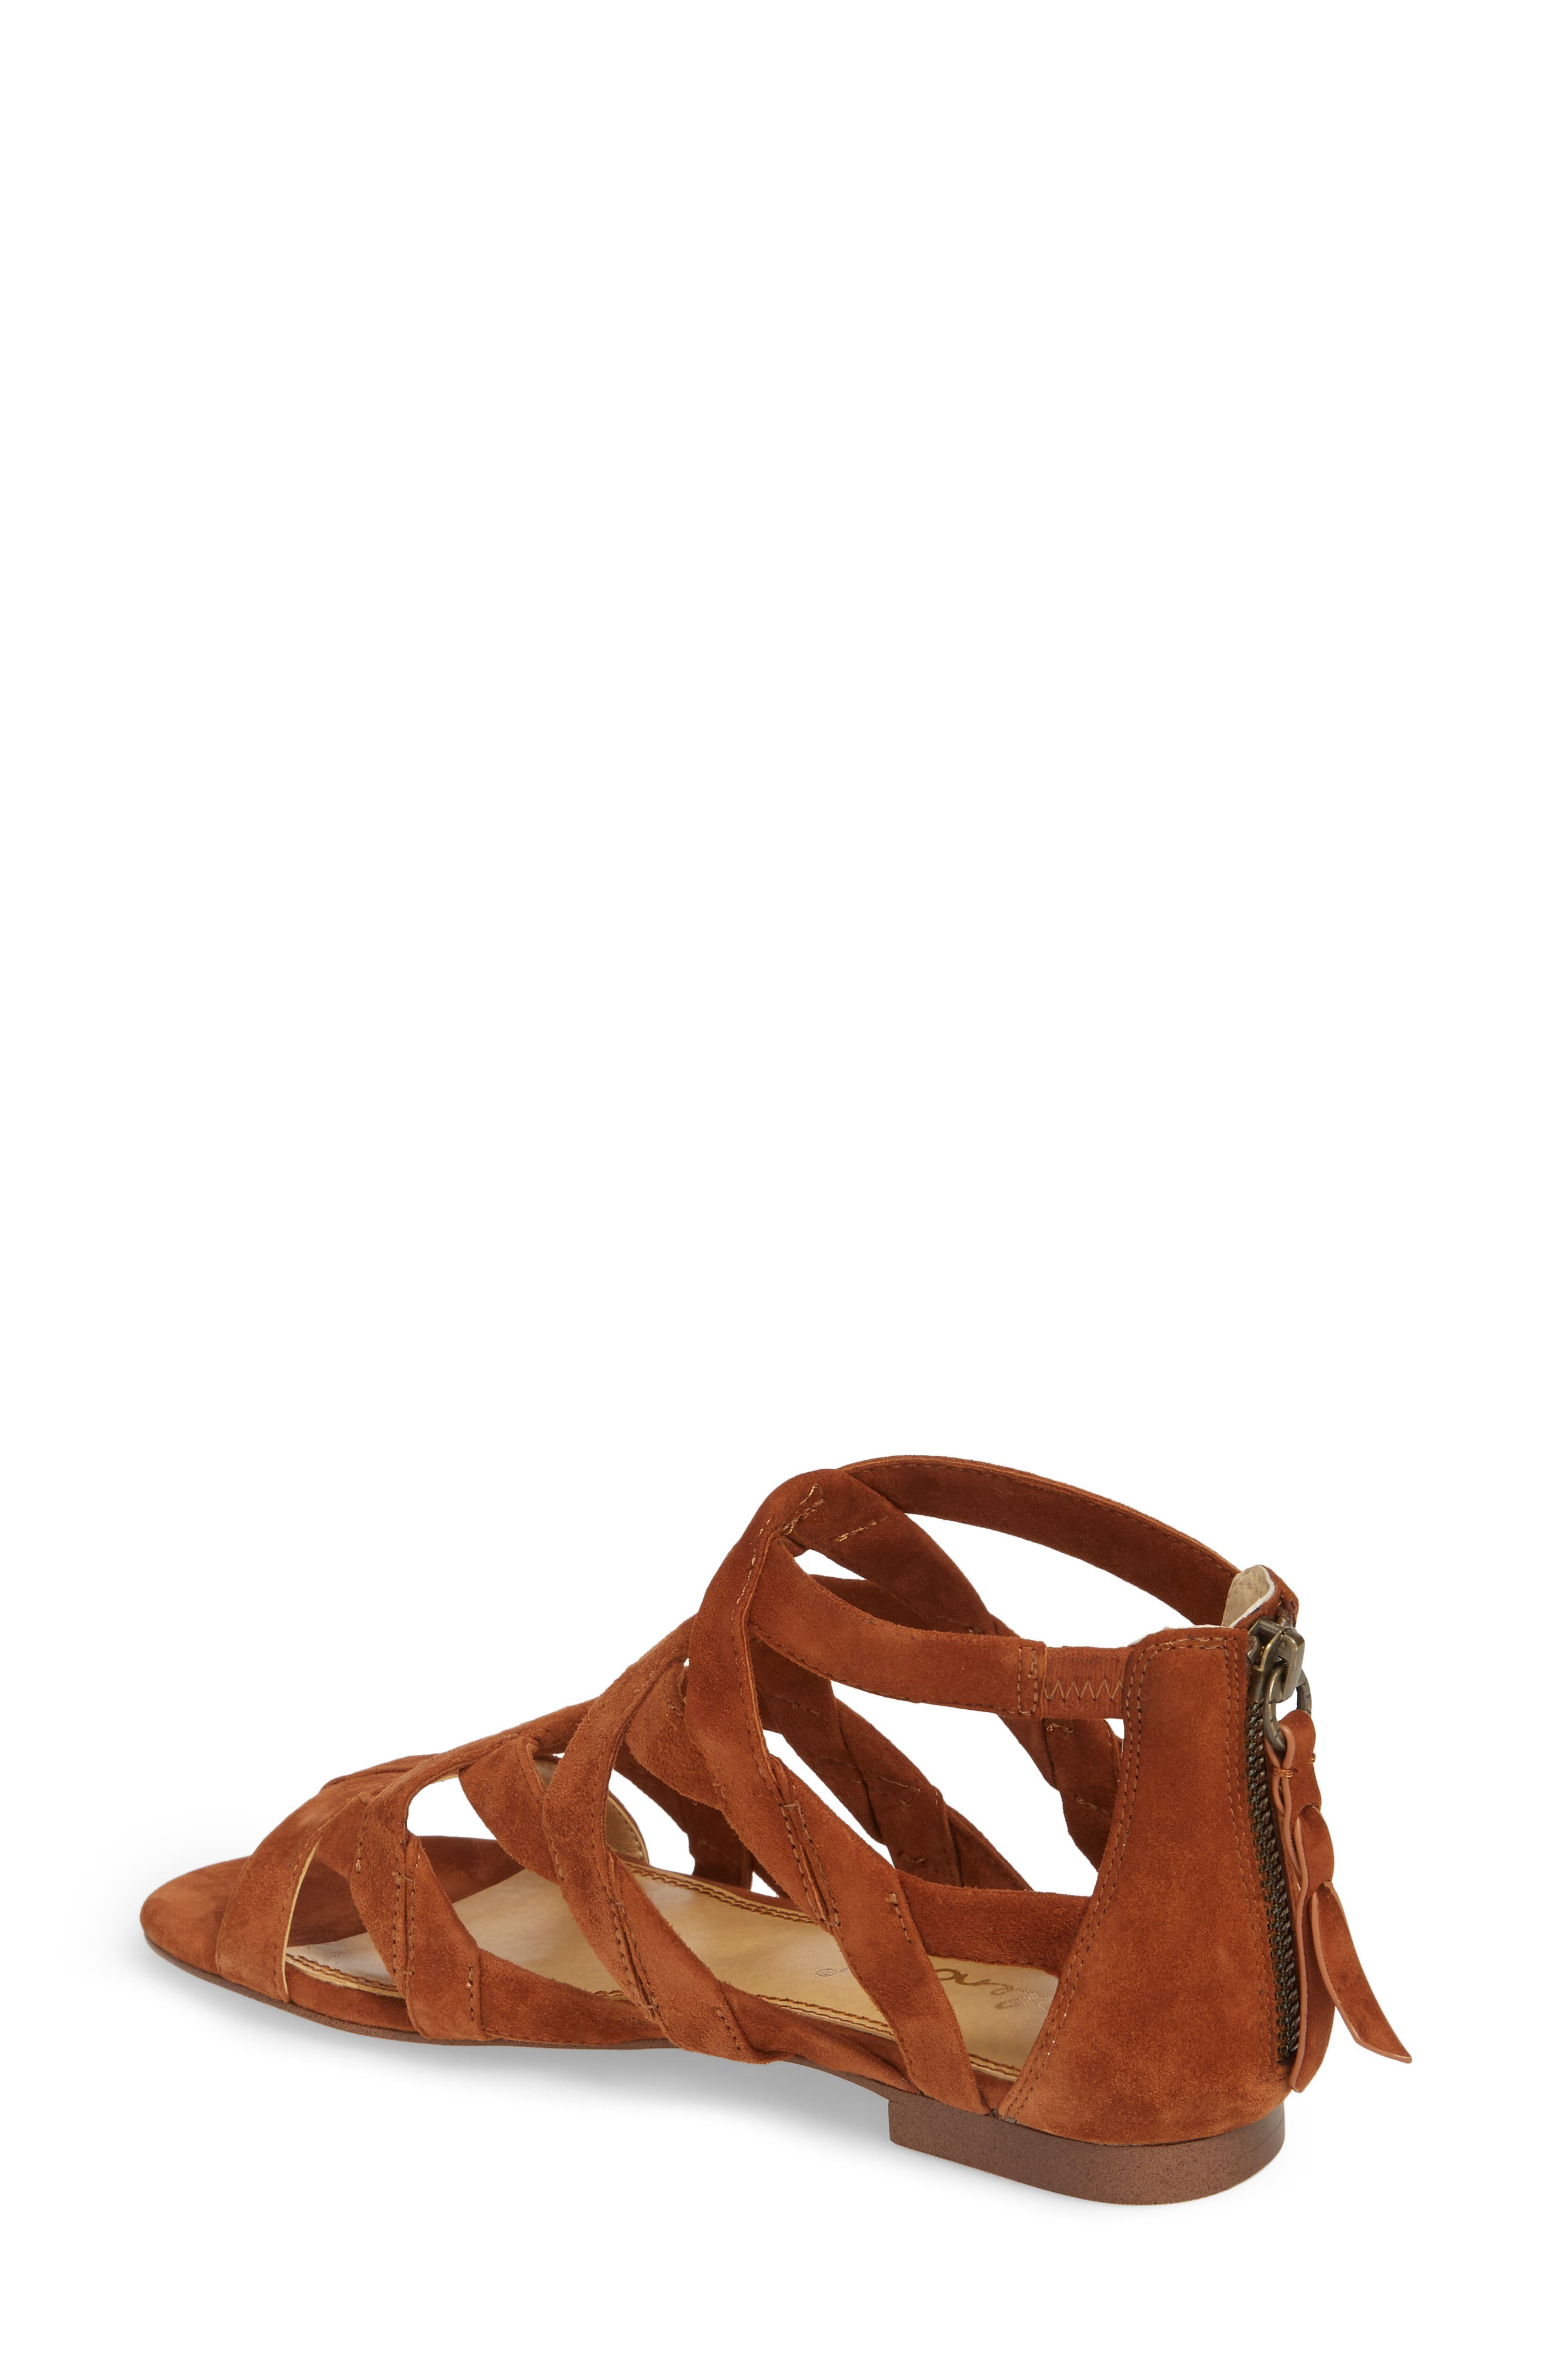 Barrett Mid Top Cage Sandal,                             Alternate thumbnail 2, color,                             Caramel Suede